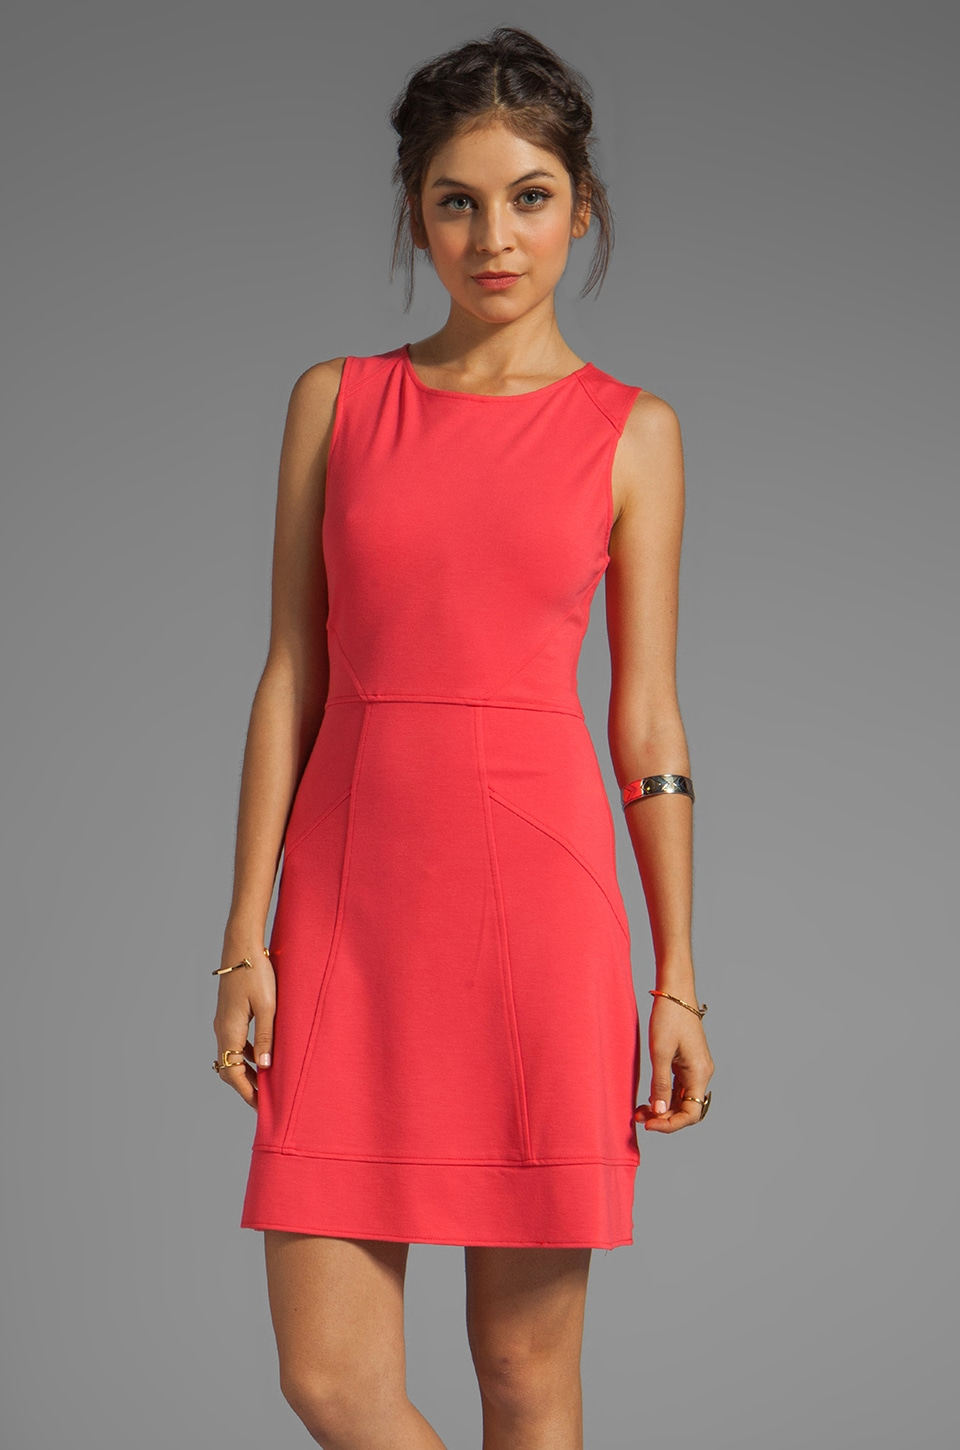 Sanctuary Black and White Cannes Seam Ballet Dress in Coral